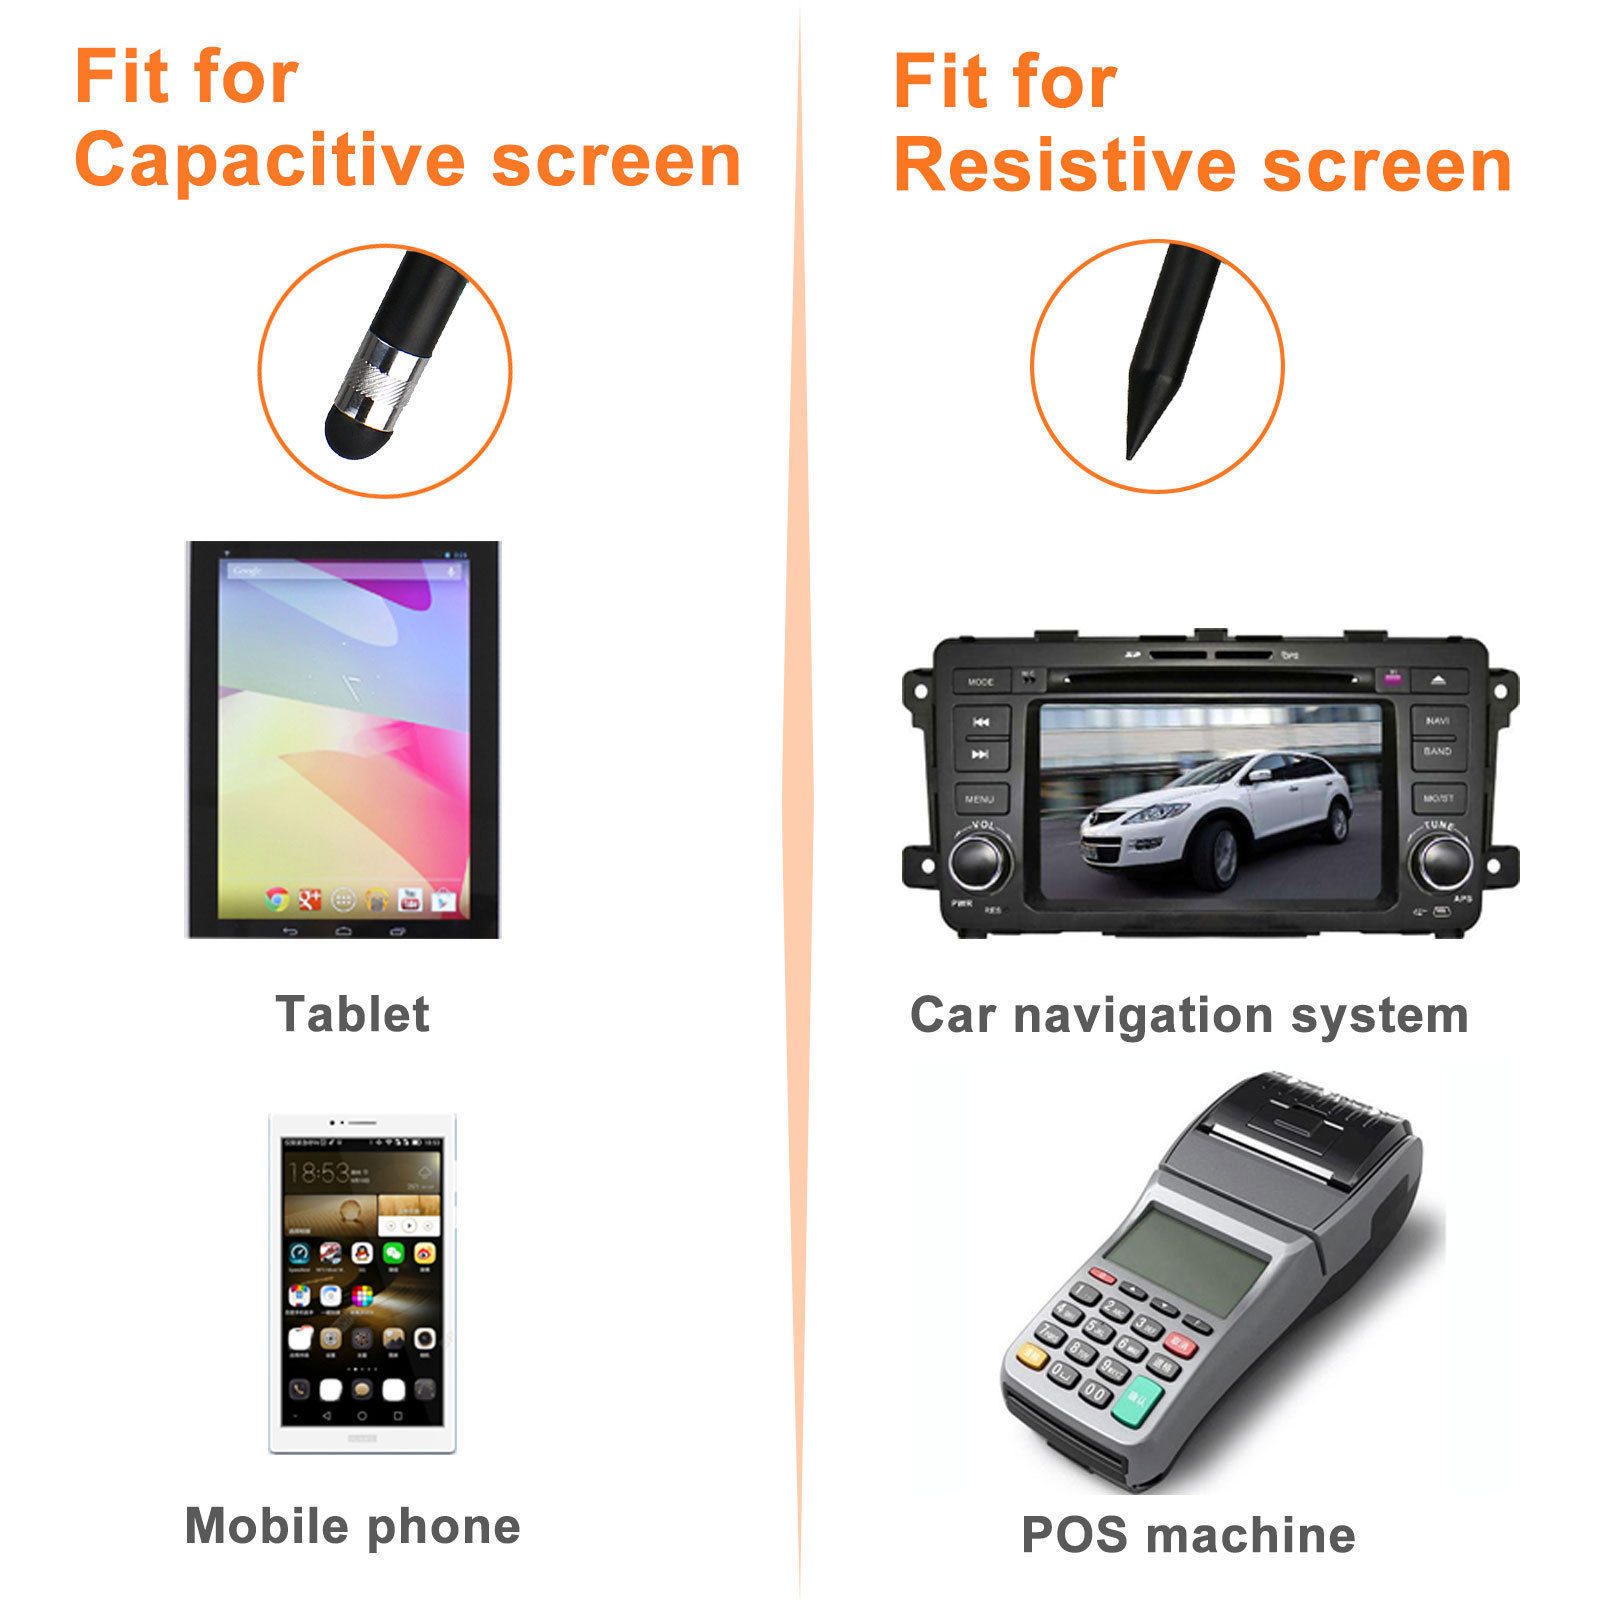 Capacitive-Pen-Touch-Screen-Stylus-Pencil-for-Tablet-iPad-Cell-Phone-Samsung-PC thumbnail 3